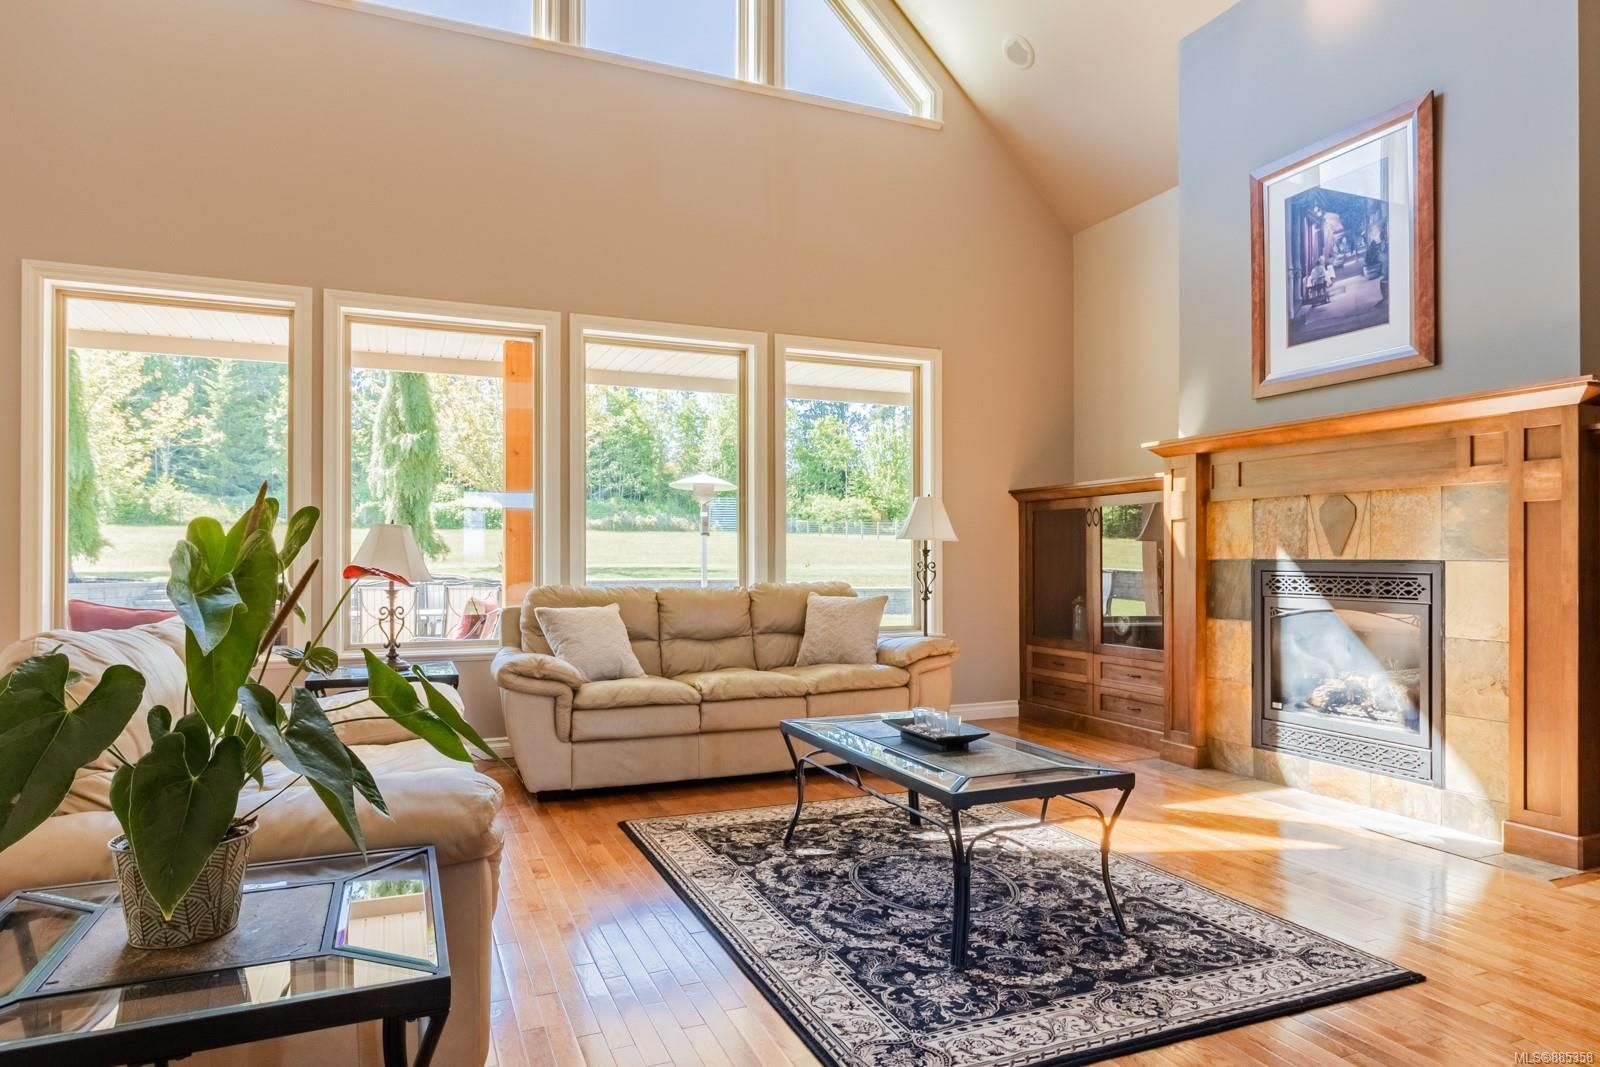 Photo 12: Photos: 2850 Peters Rd in : PQ Qualicum Beach House for sale (Parksville/Qualicum)  : MLS®# 885358